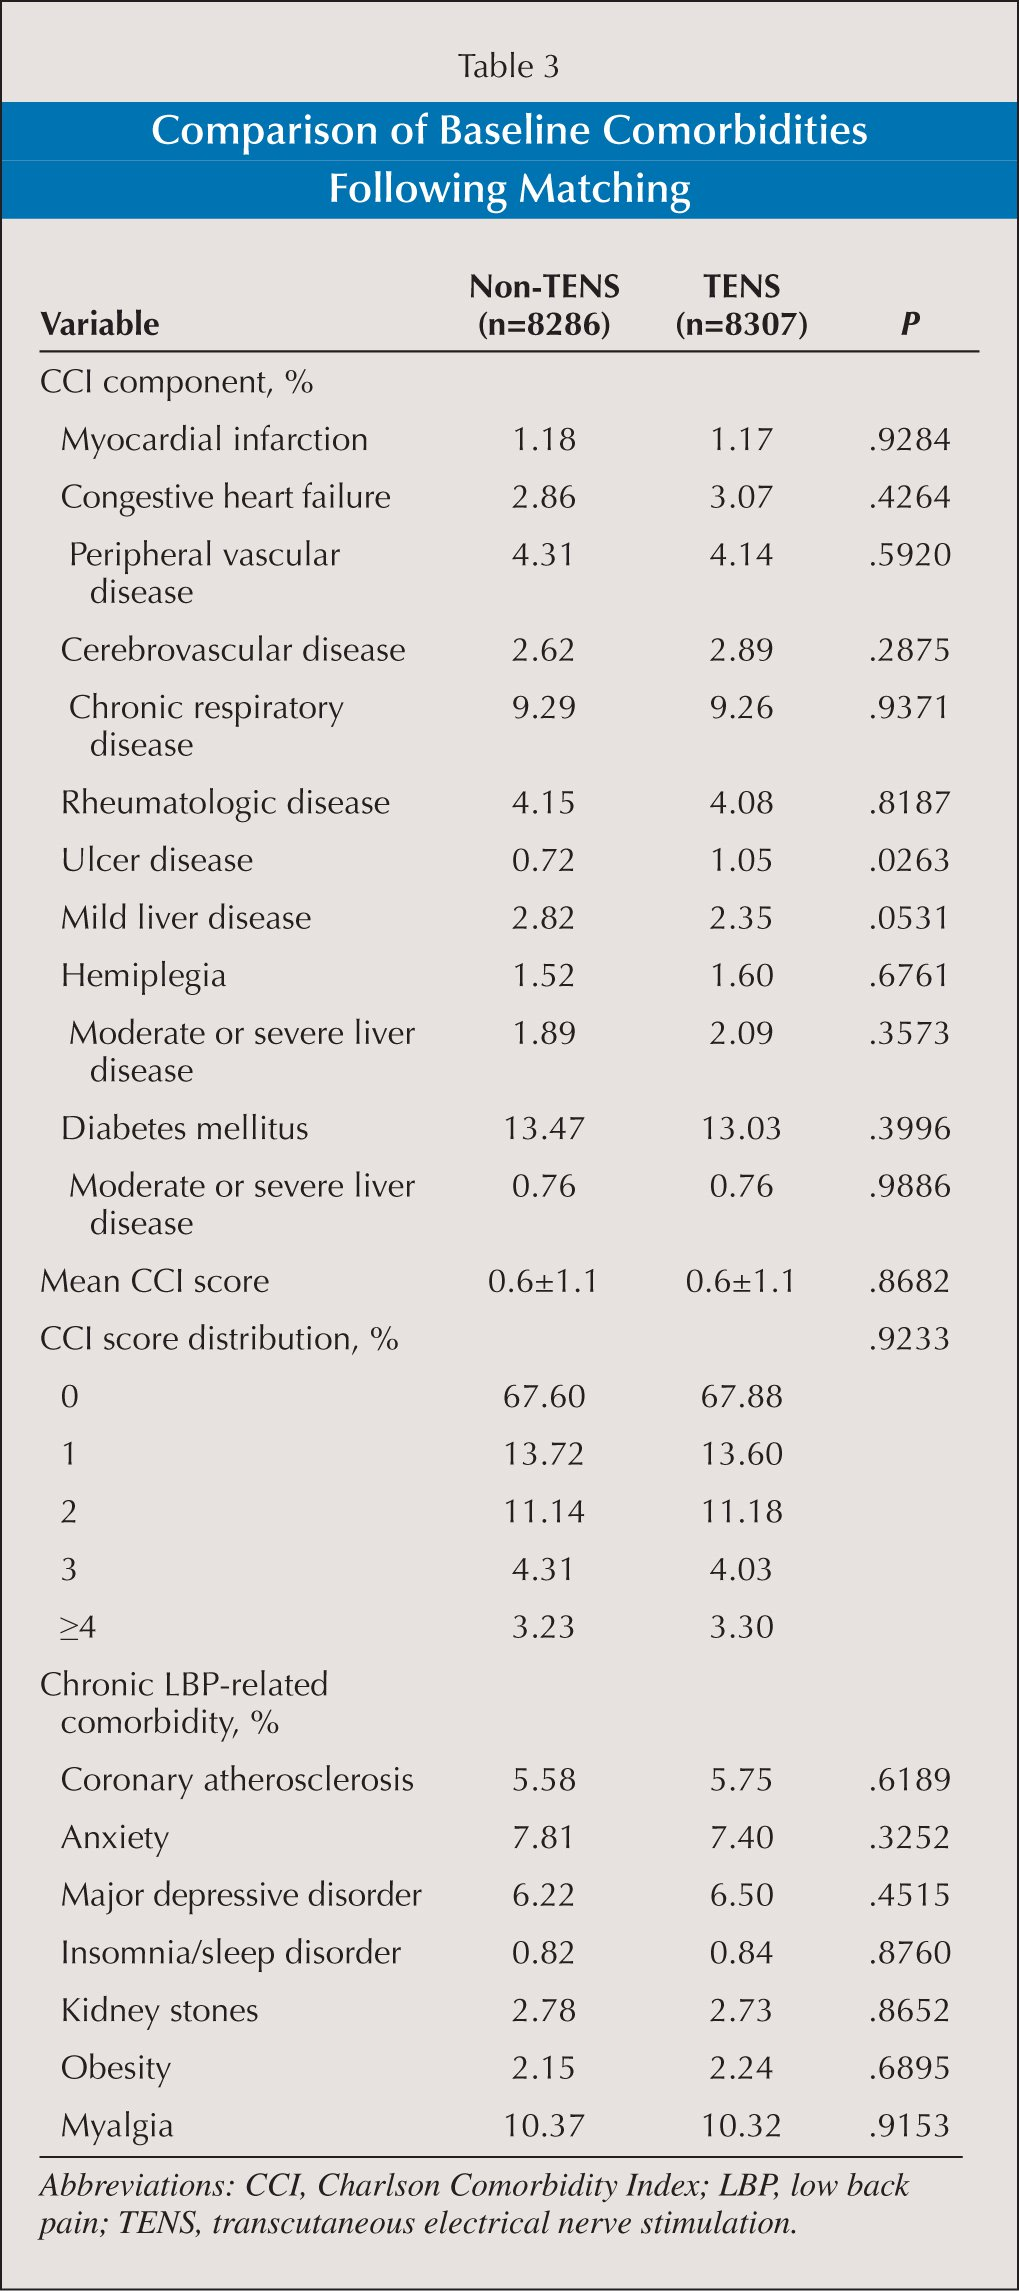 Comparison of Baseline Comorbidities Following Matching